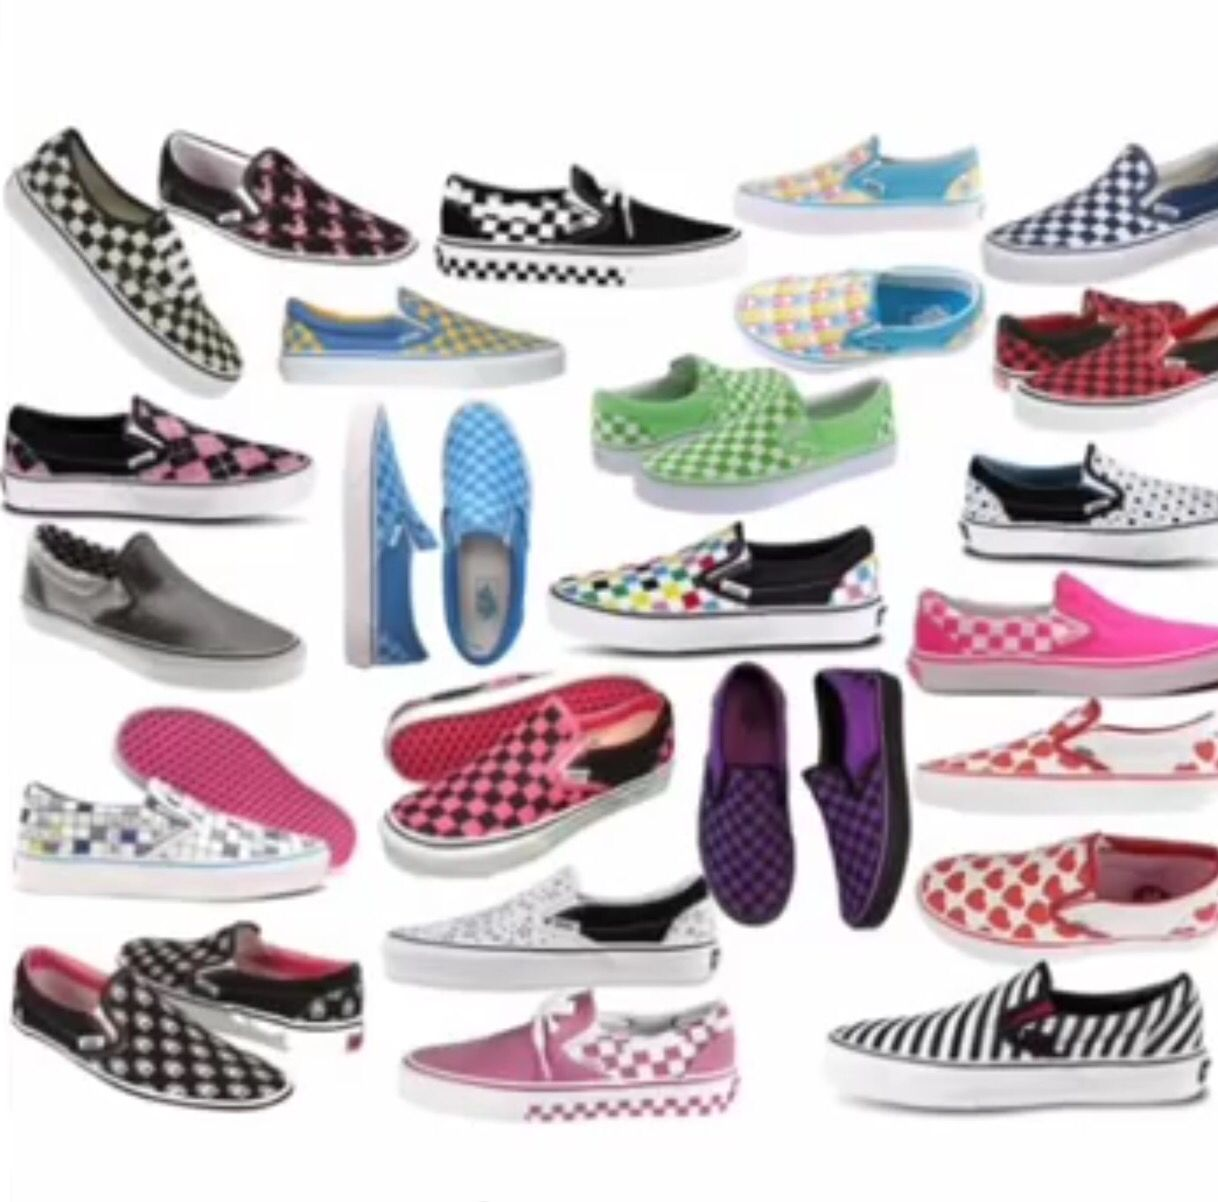 Types Of Vans >> Emo Eww Hot Topick Shoes Kinds Of Shoes Crazy Shoes